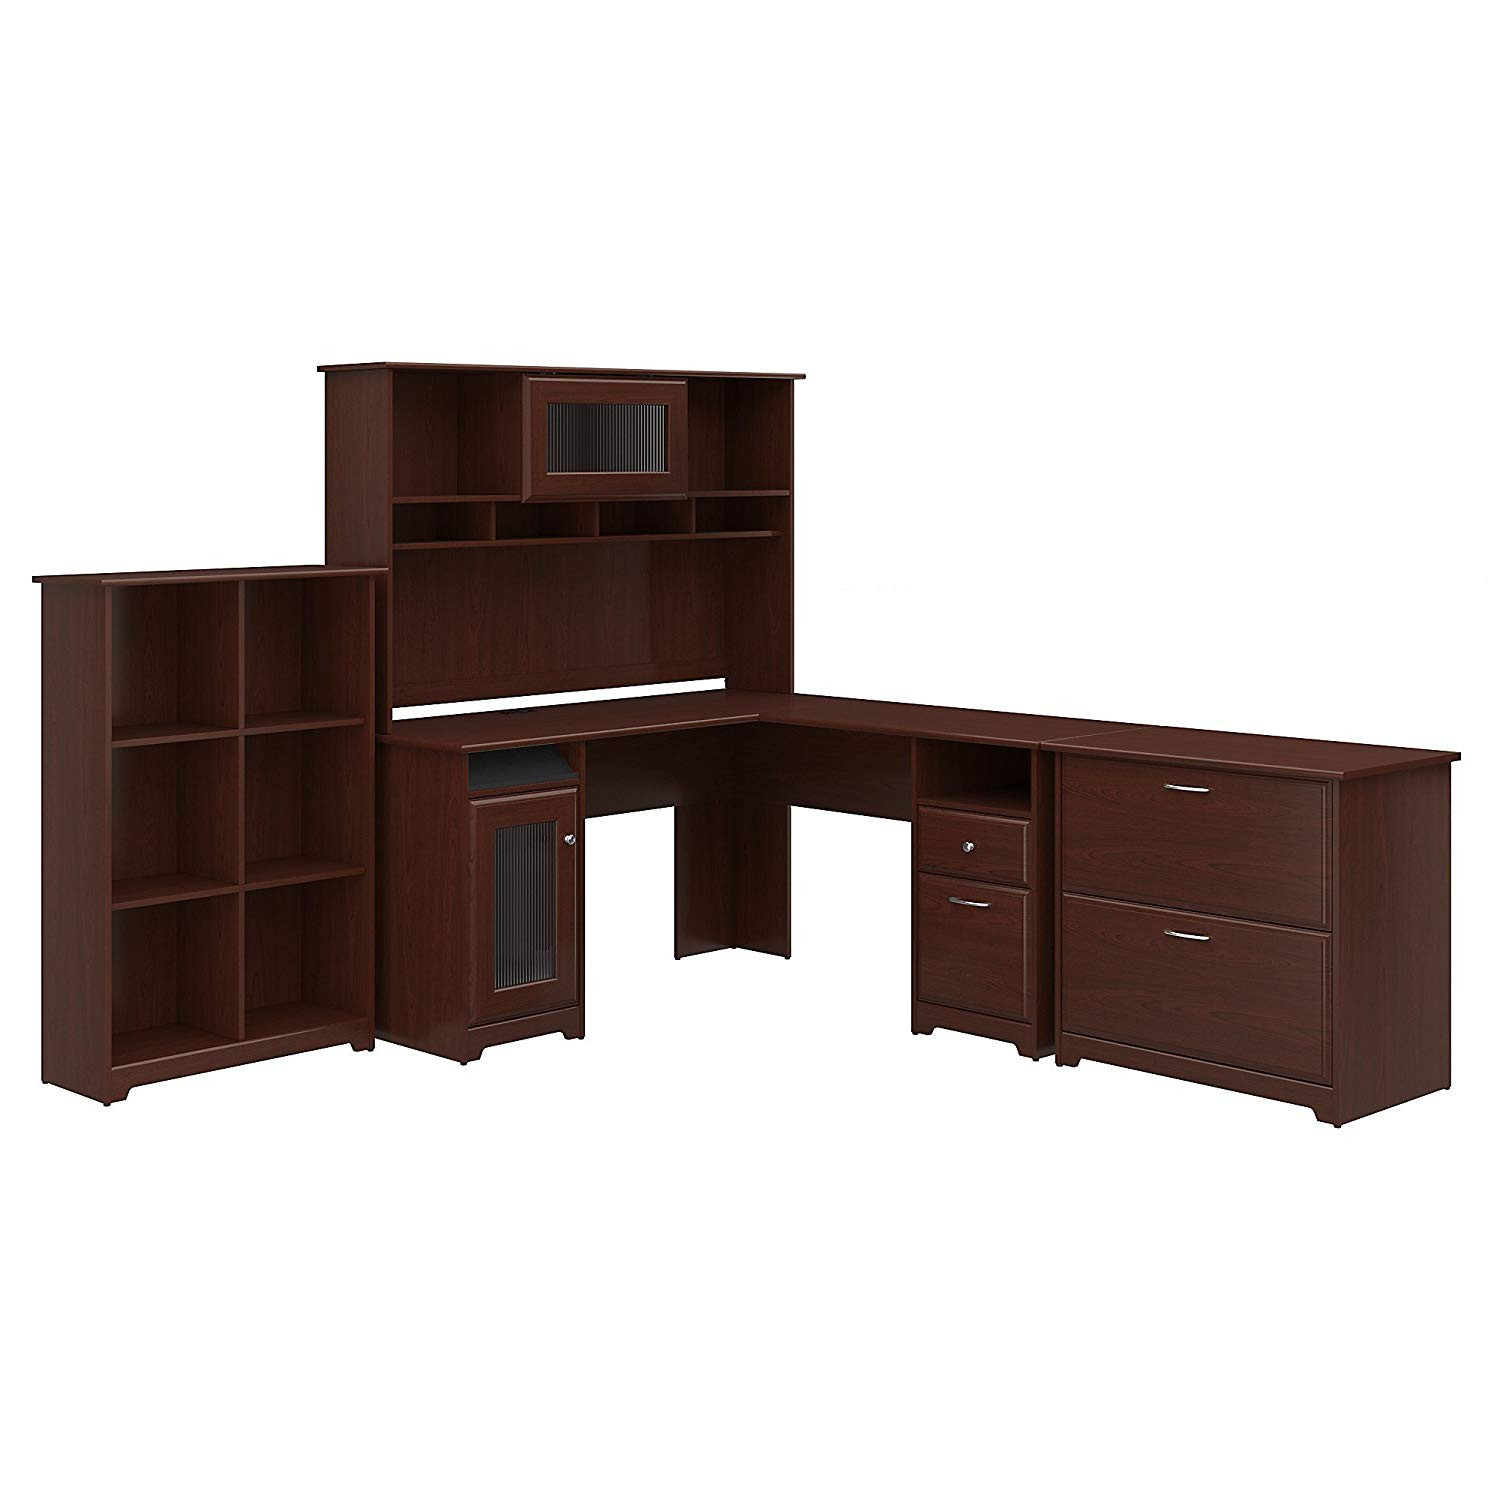 Cube Organizer Desk  Bush Furniture Cabot L Shaped Desk with Hutch 6 Cube